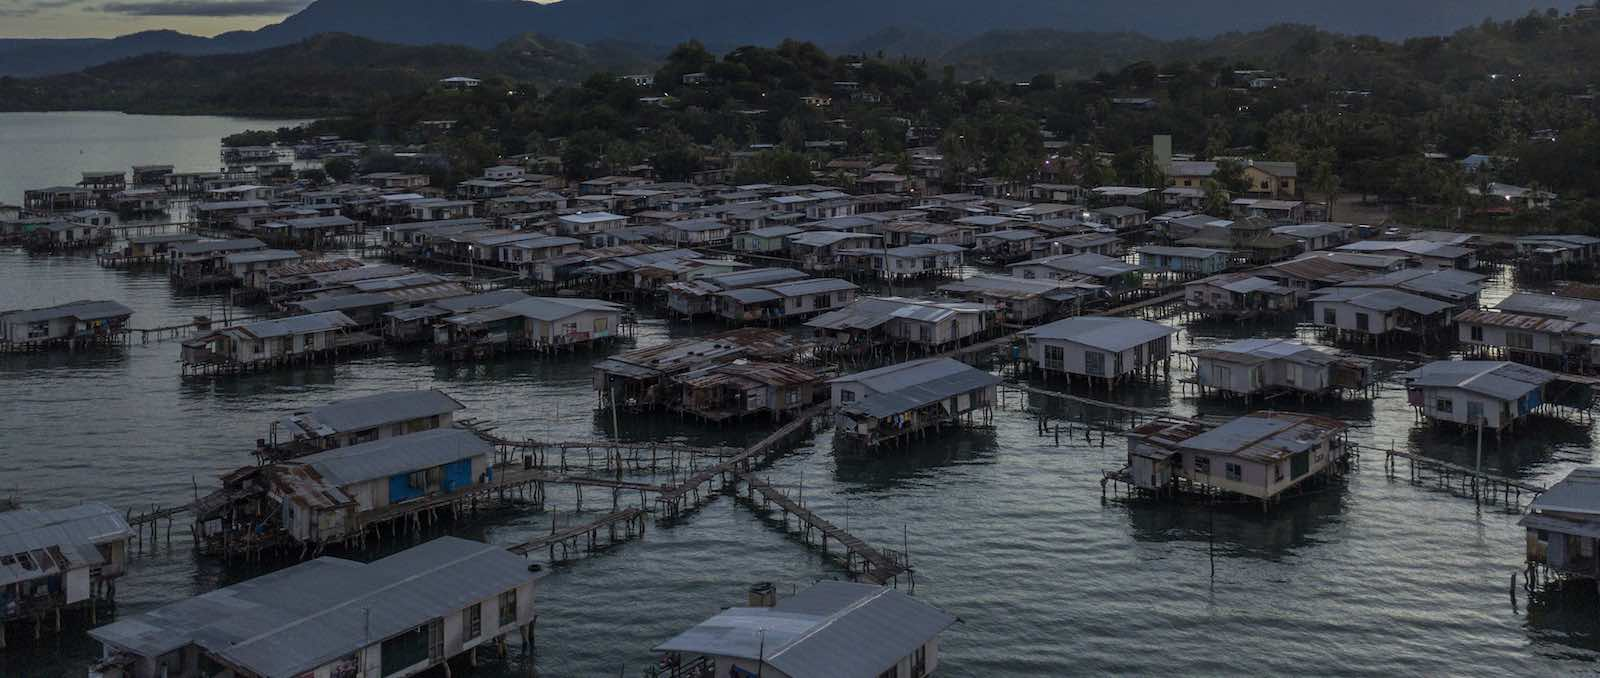 Tubusereia fishing village, Central Province, PNG (Photo: Asian Development Bank/Flickr)